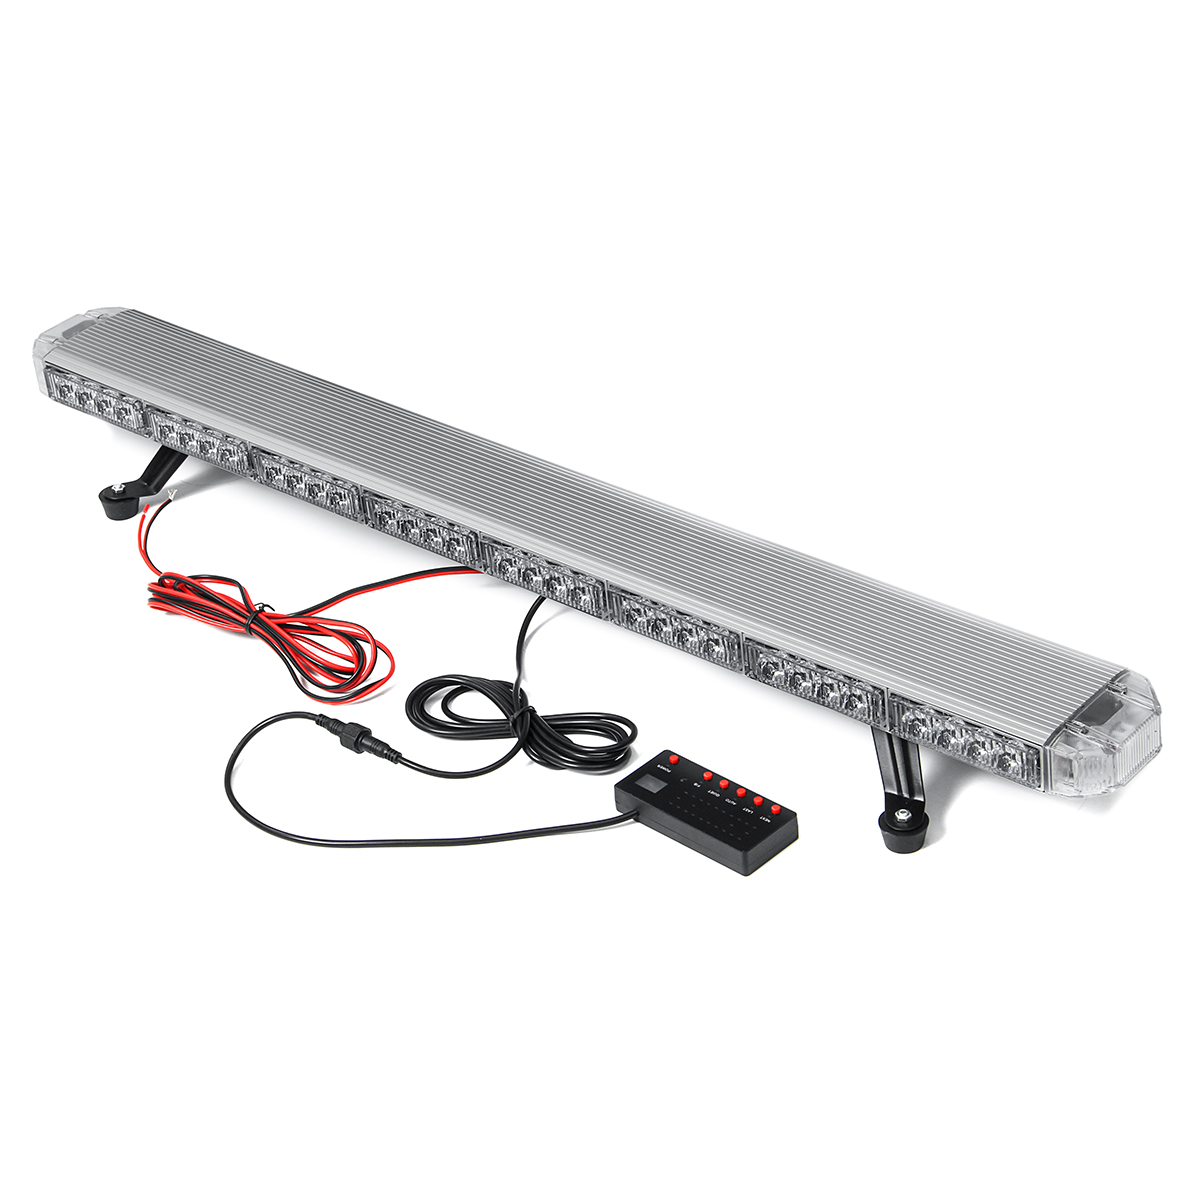 "41"" 210W LED 12V 24V Truck Car Strobe Light Light Bar Led Bar Flashing Beacon Light Roof Emergency Warning Lamps 21 Modes"